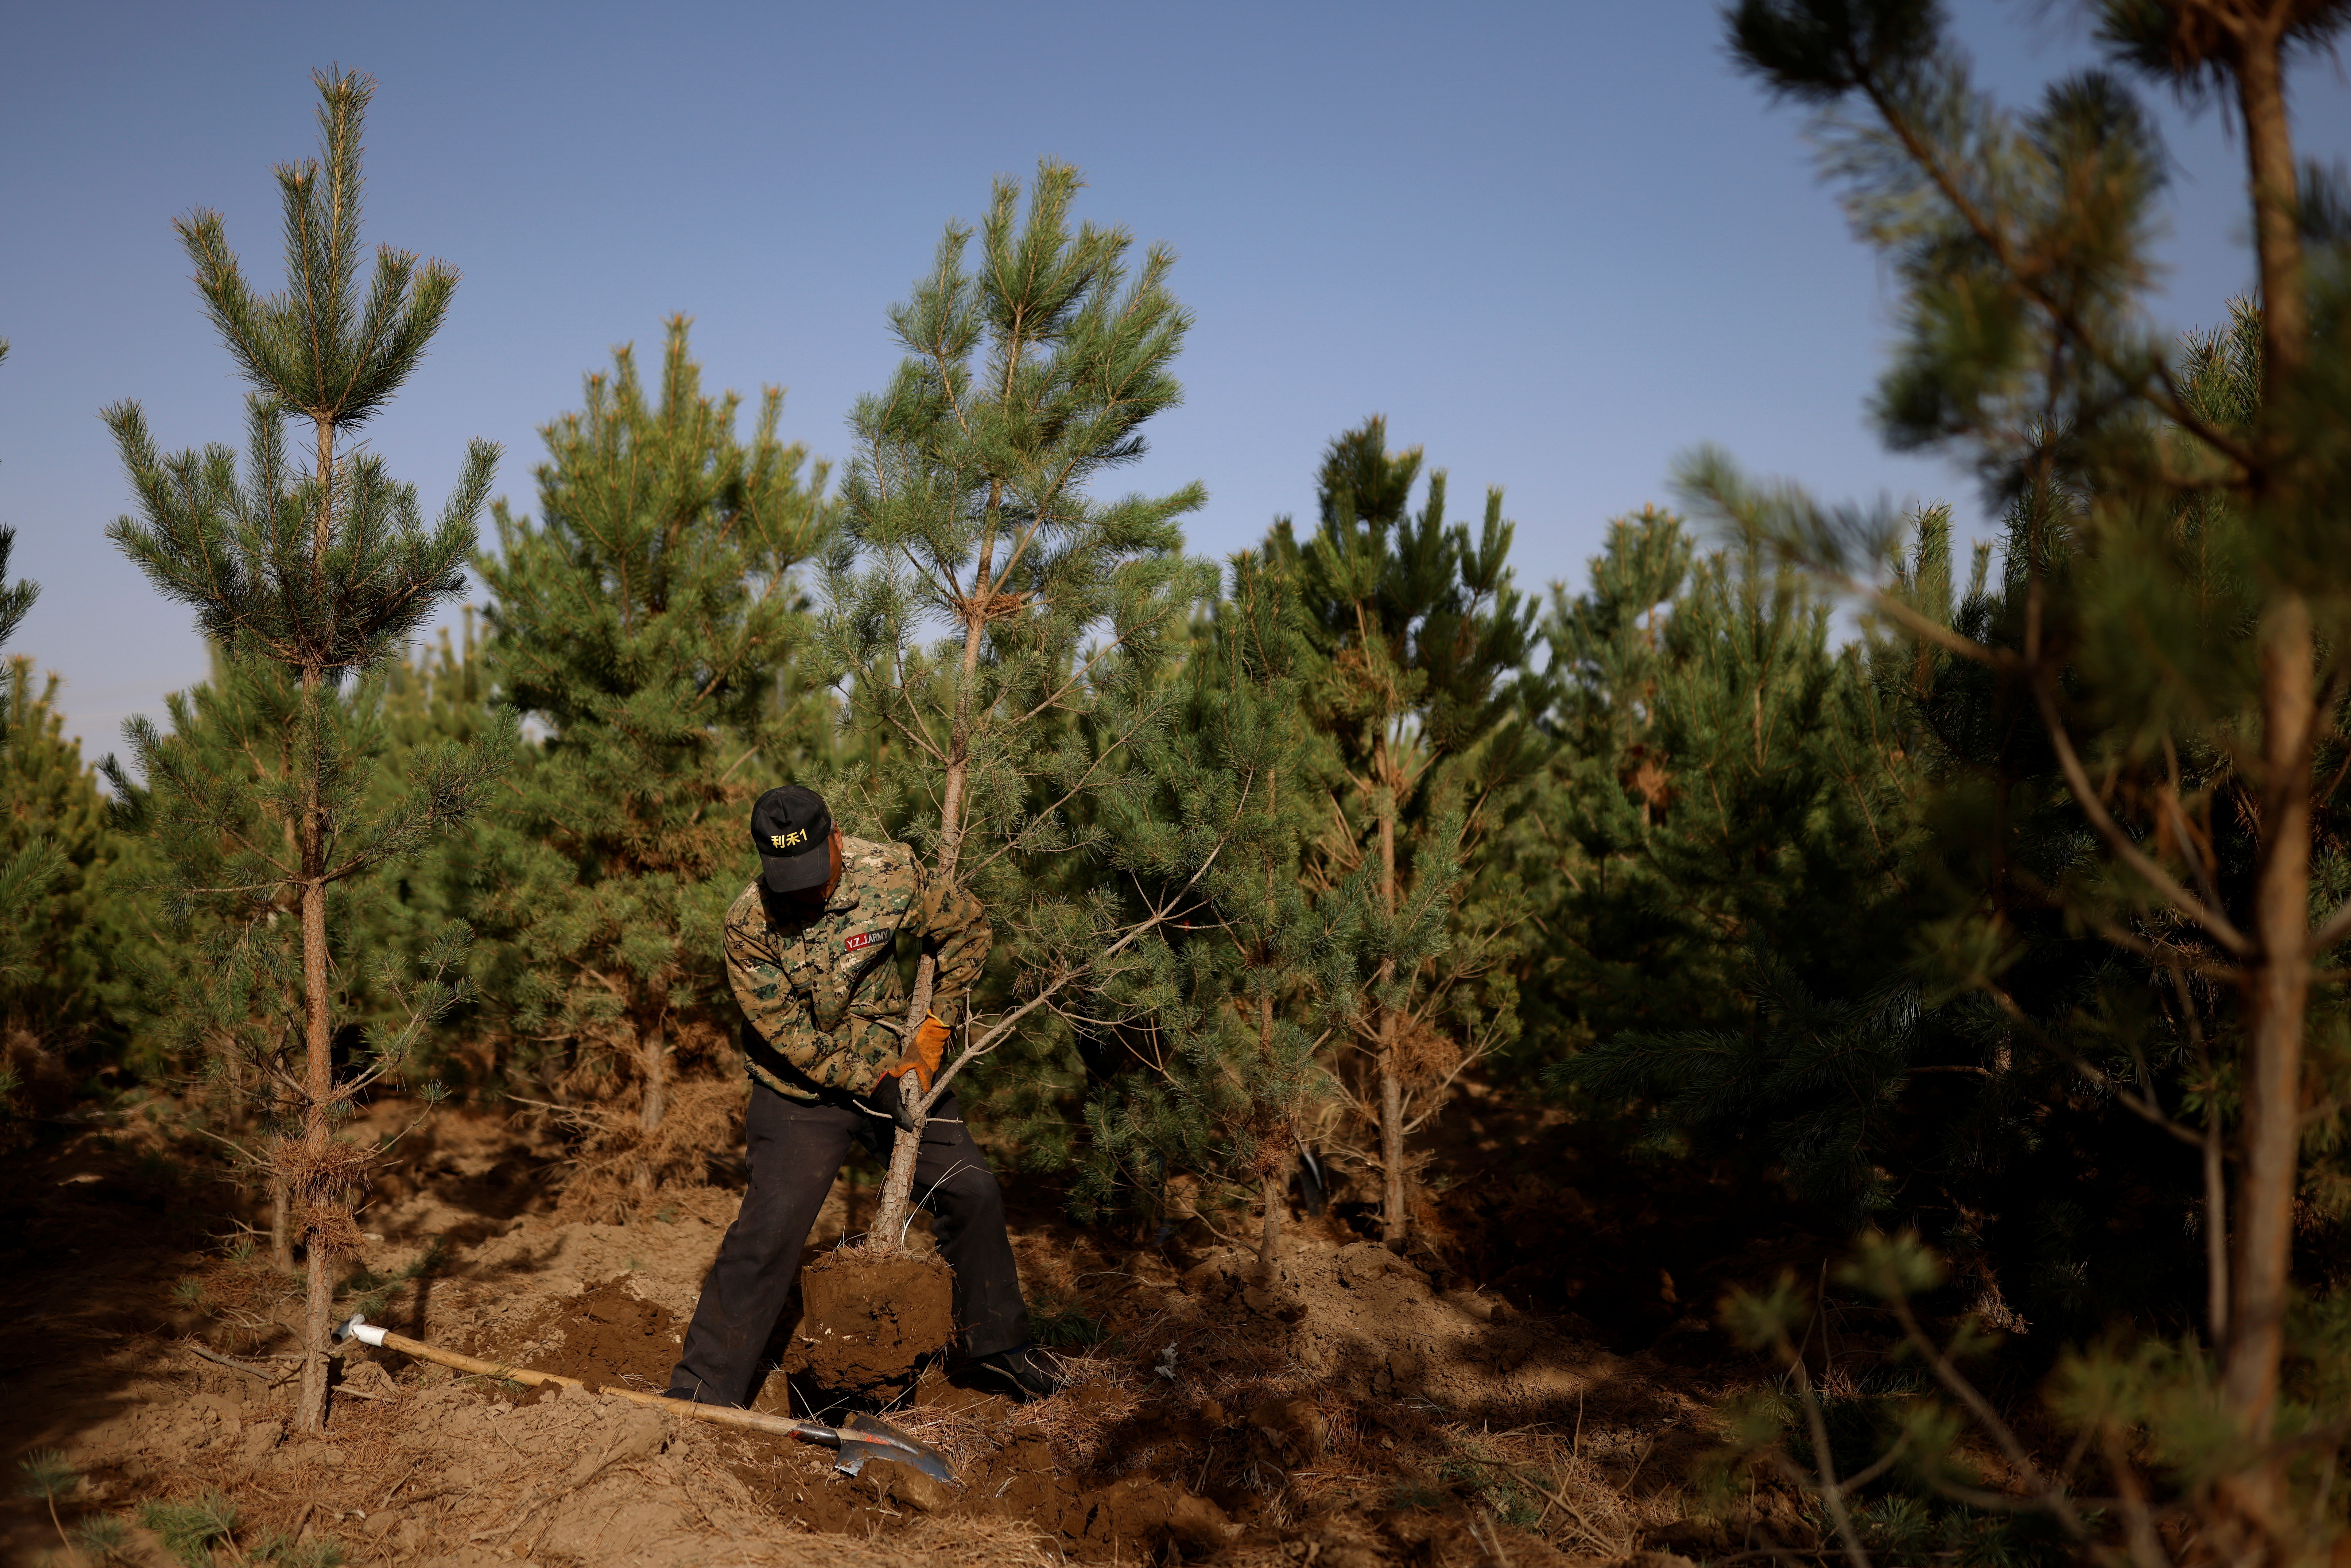 """A worker lifts a tree from the ground at the Toudunying state-owned commercial forest estate in a village near the edge of the Gobi desert, on the outskirts of Wuwei, Gansu province, China, April 16, 2021. Over the last four decades, the Three-North Shelter Forest Programme tree-planting scheme, known colloquially as the """"Great Green Wall"""", has helped raise total forest coverage to nearly a quarter of China's total area, up from less than 10% in 1949. In Hongshui trees have become a major part of the local economy and the area is dominated by a large state-owned commercial forest estate called Toudunying."""